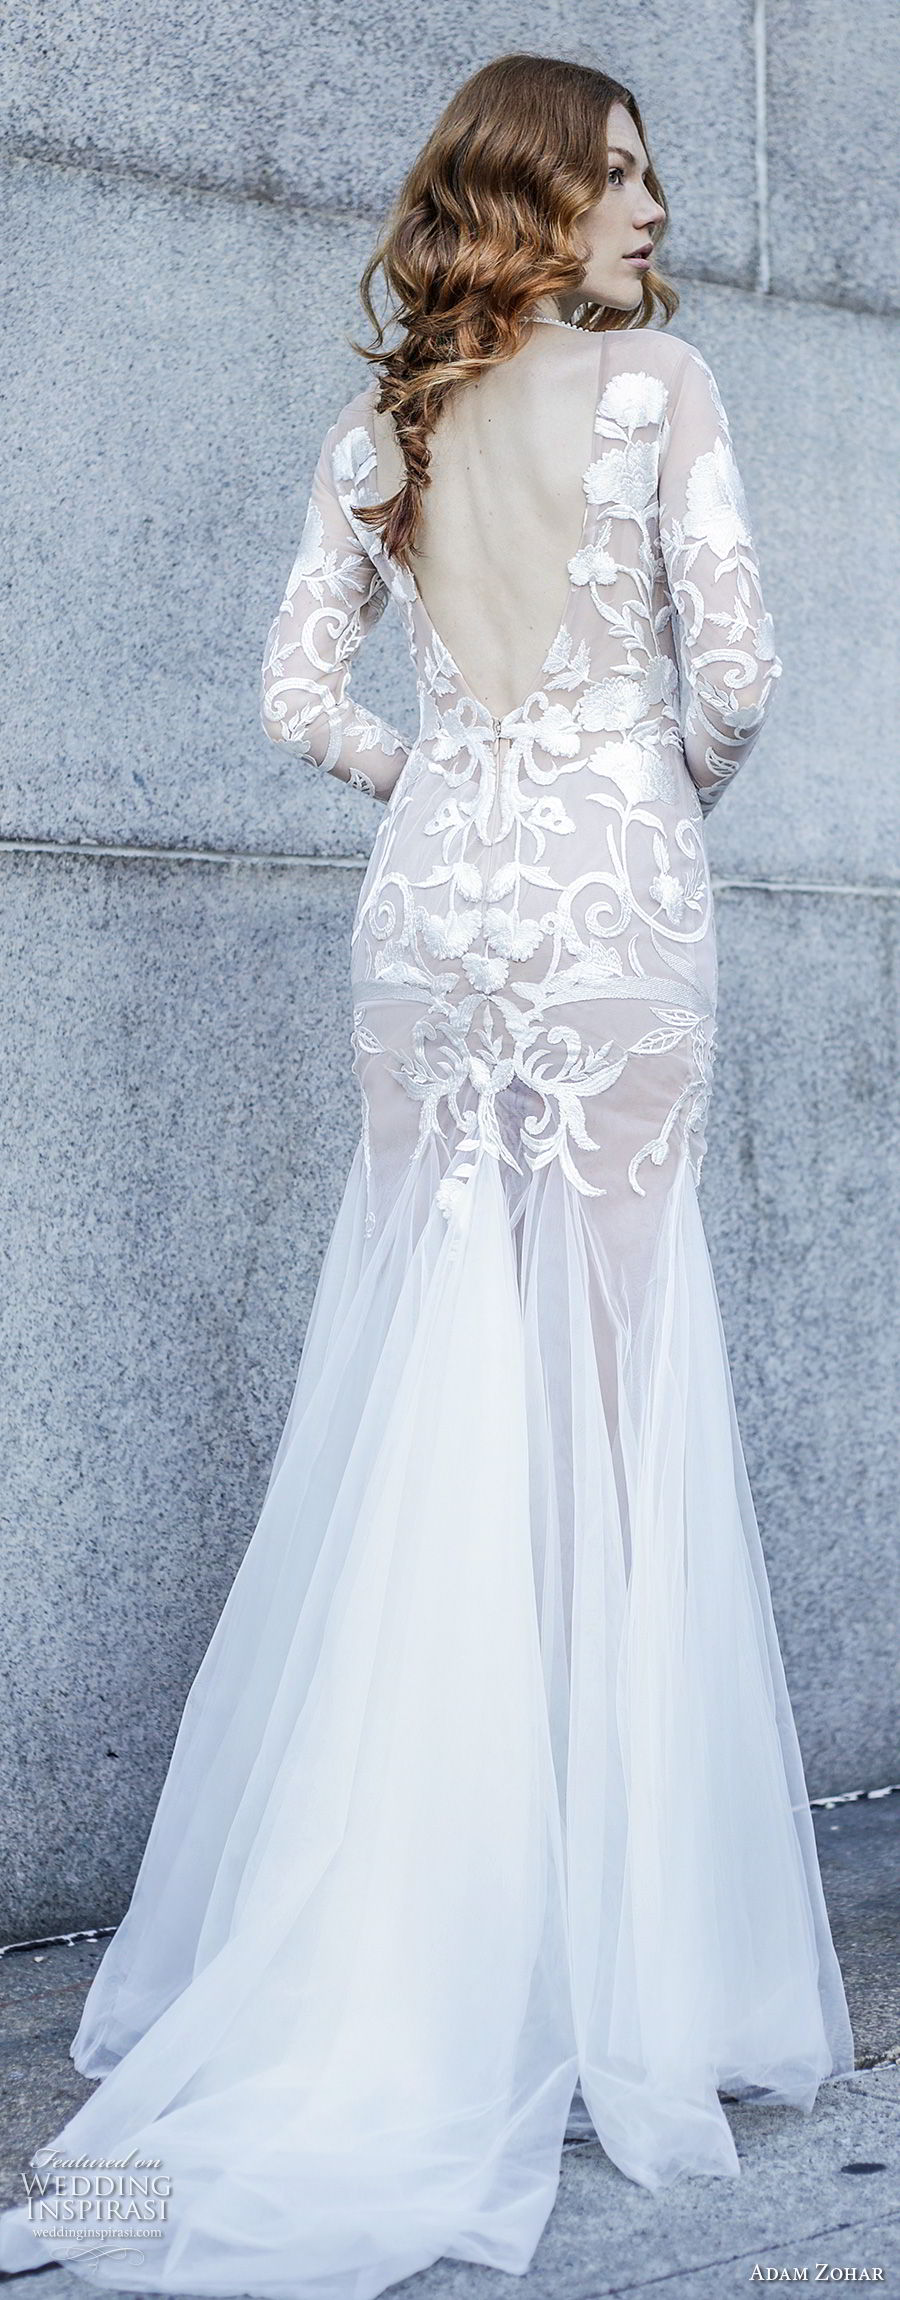 adam zohar 2017 bridal long sleeves illusion jewel neck heavily embellished bodice elegant trumpet wedding dress open v back sweep train (7) bv